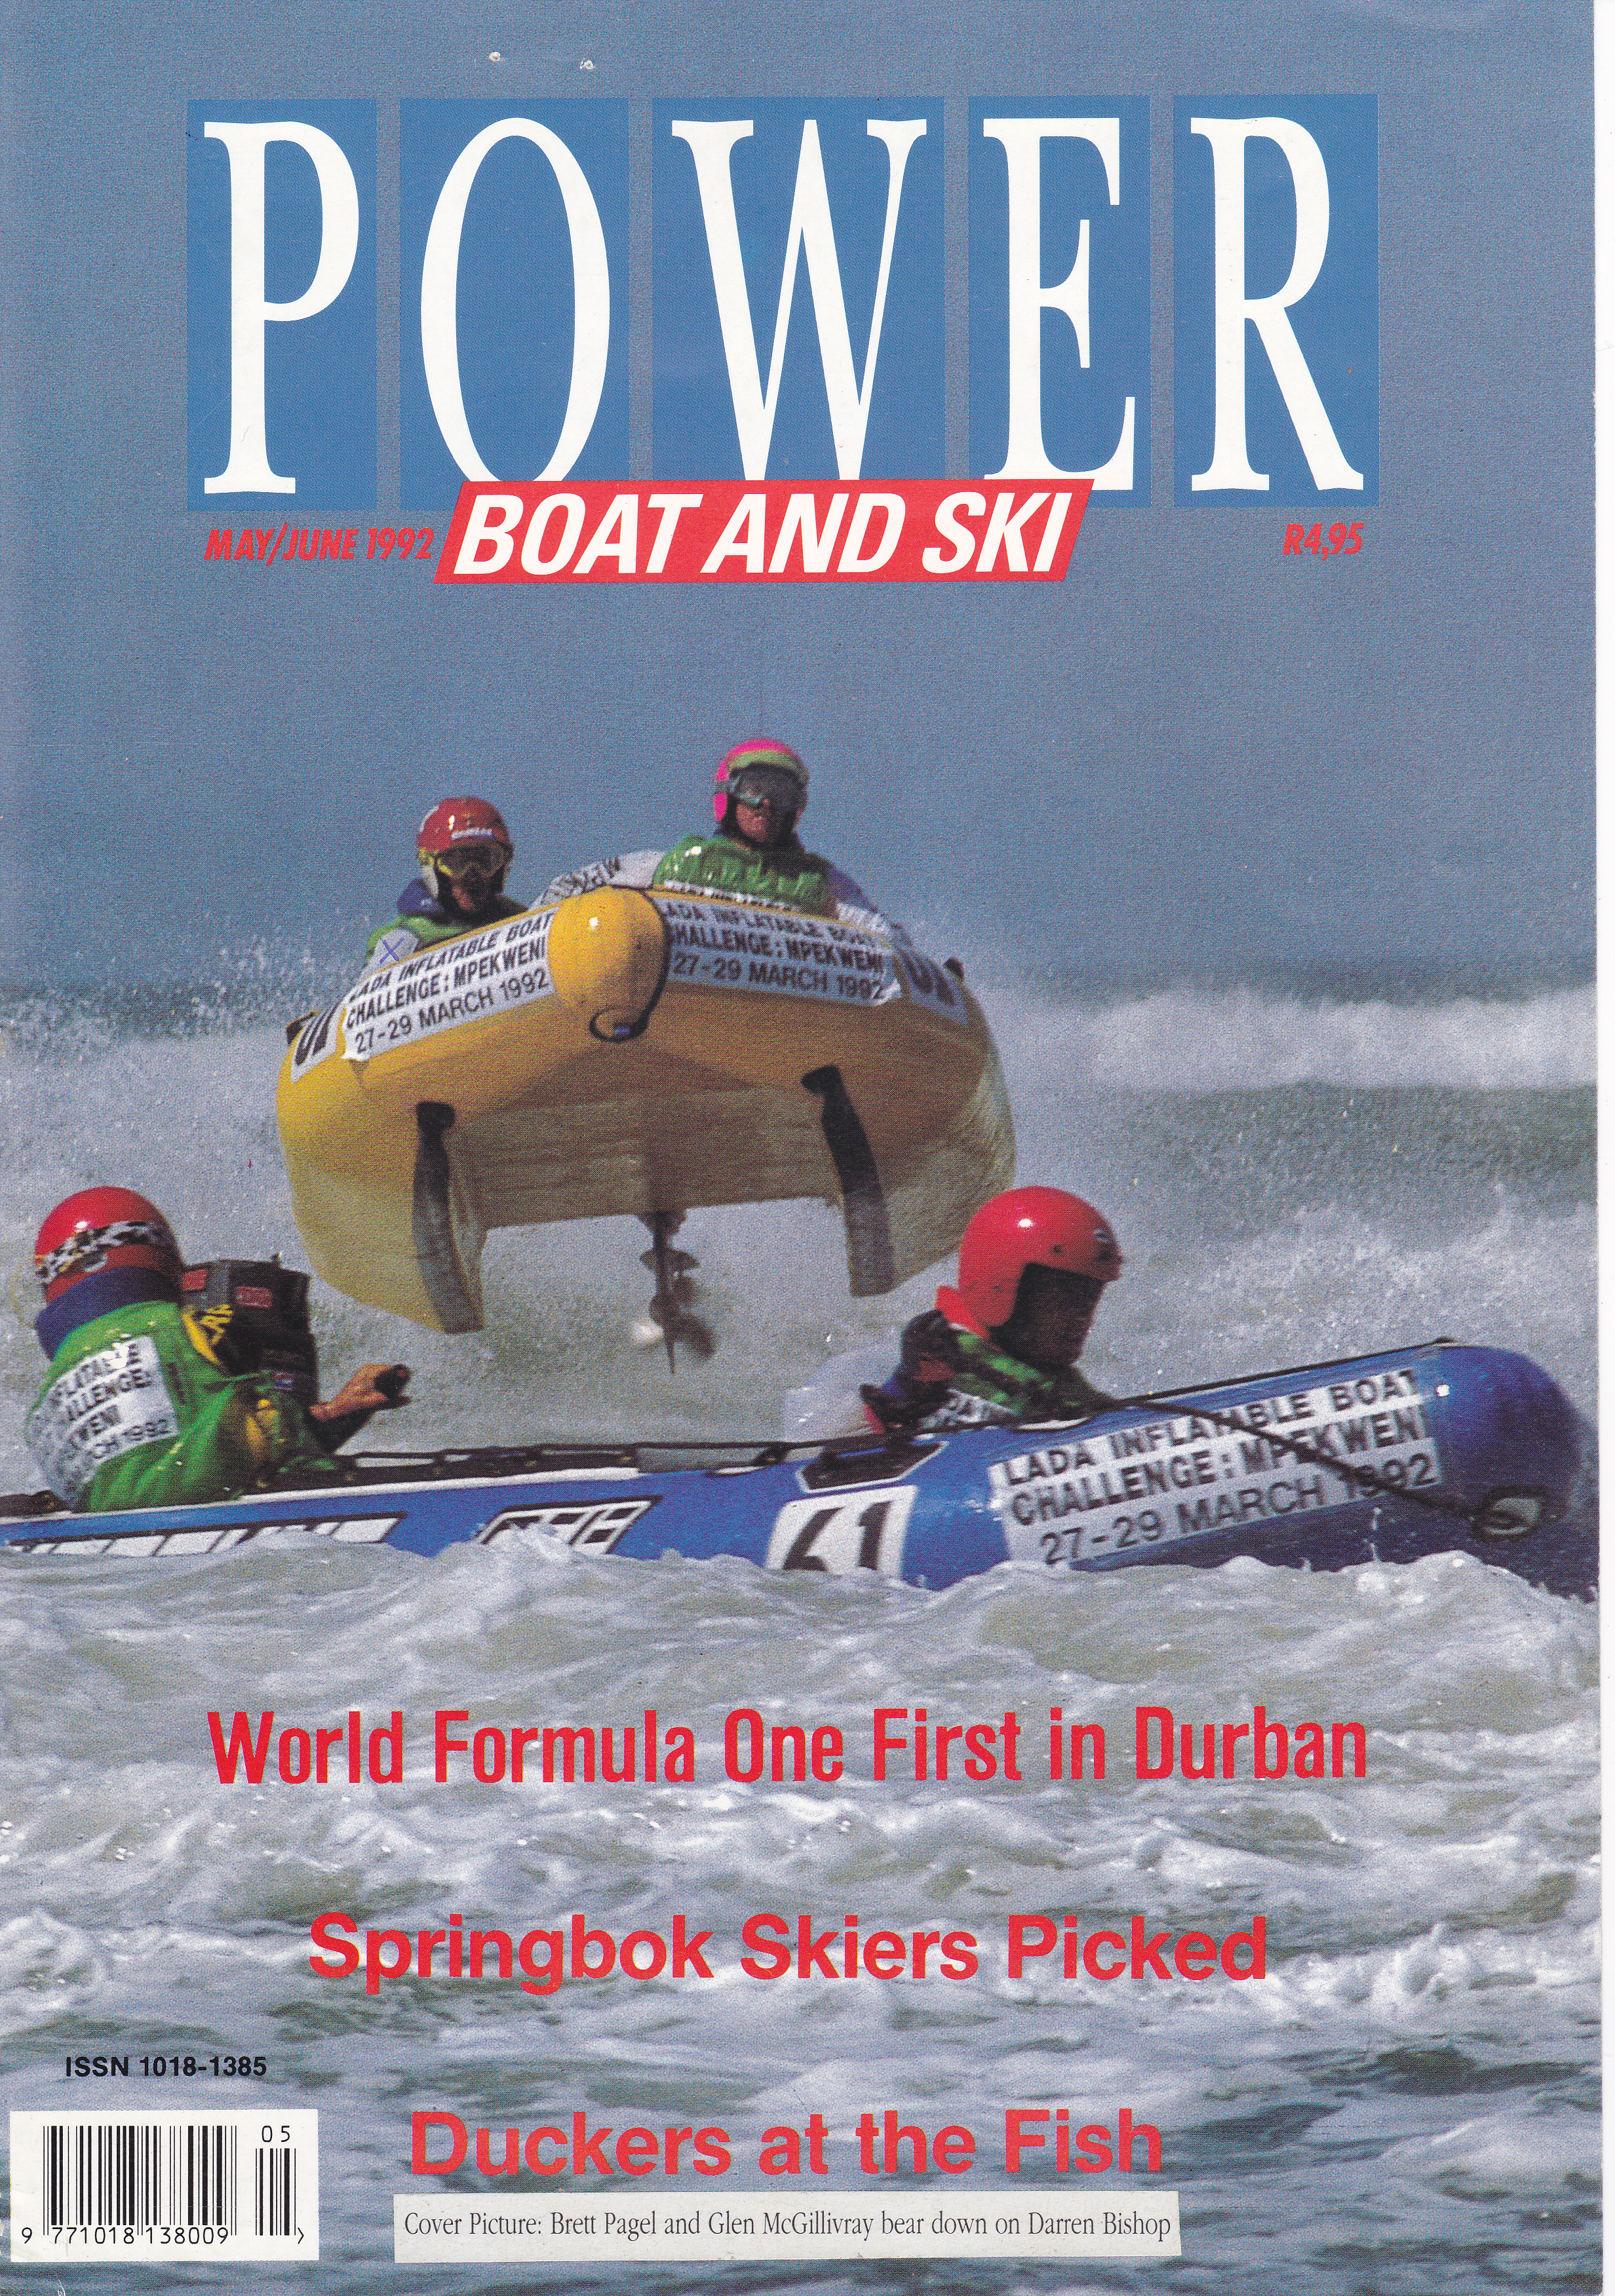 Power Boat and Ski Cover 1992